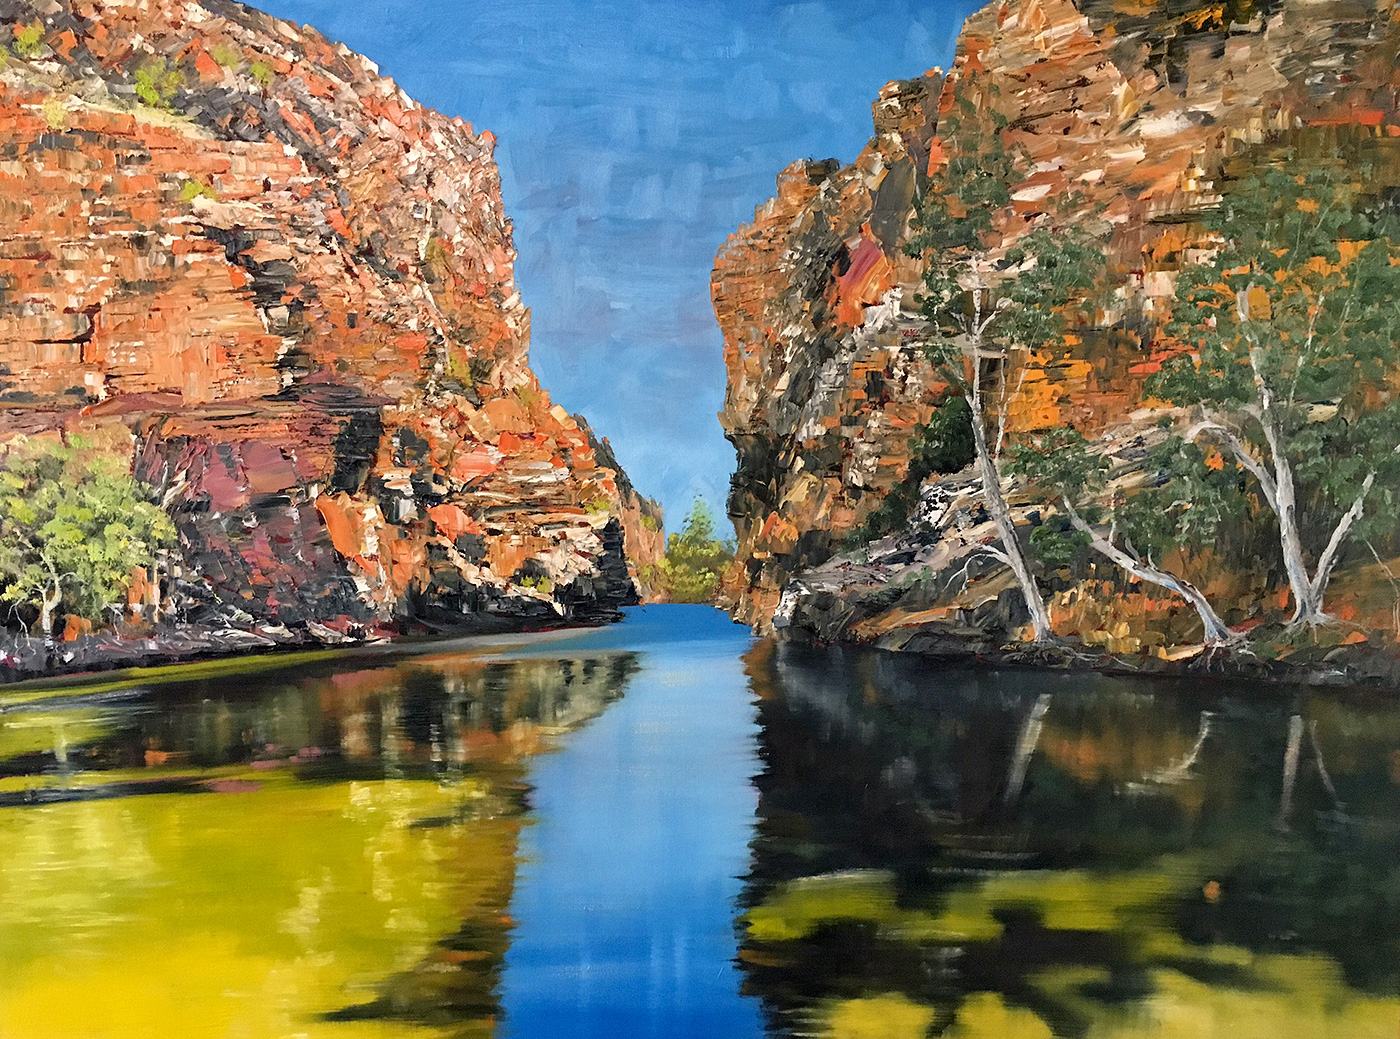 Steve Freestone - 'Alchemy, Ellery Creek Big Hole'